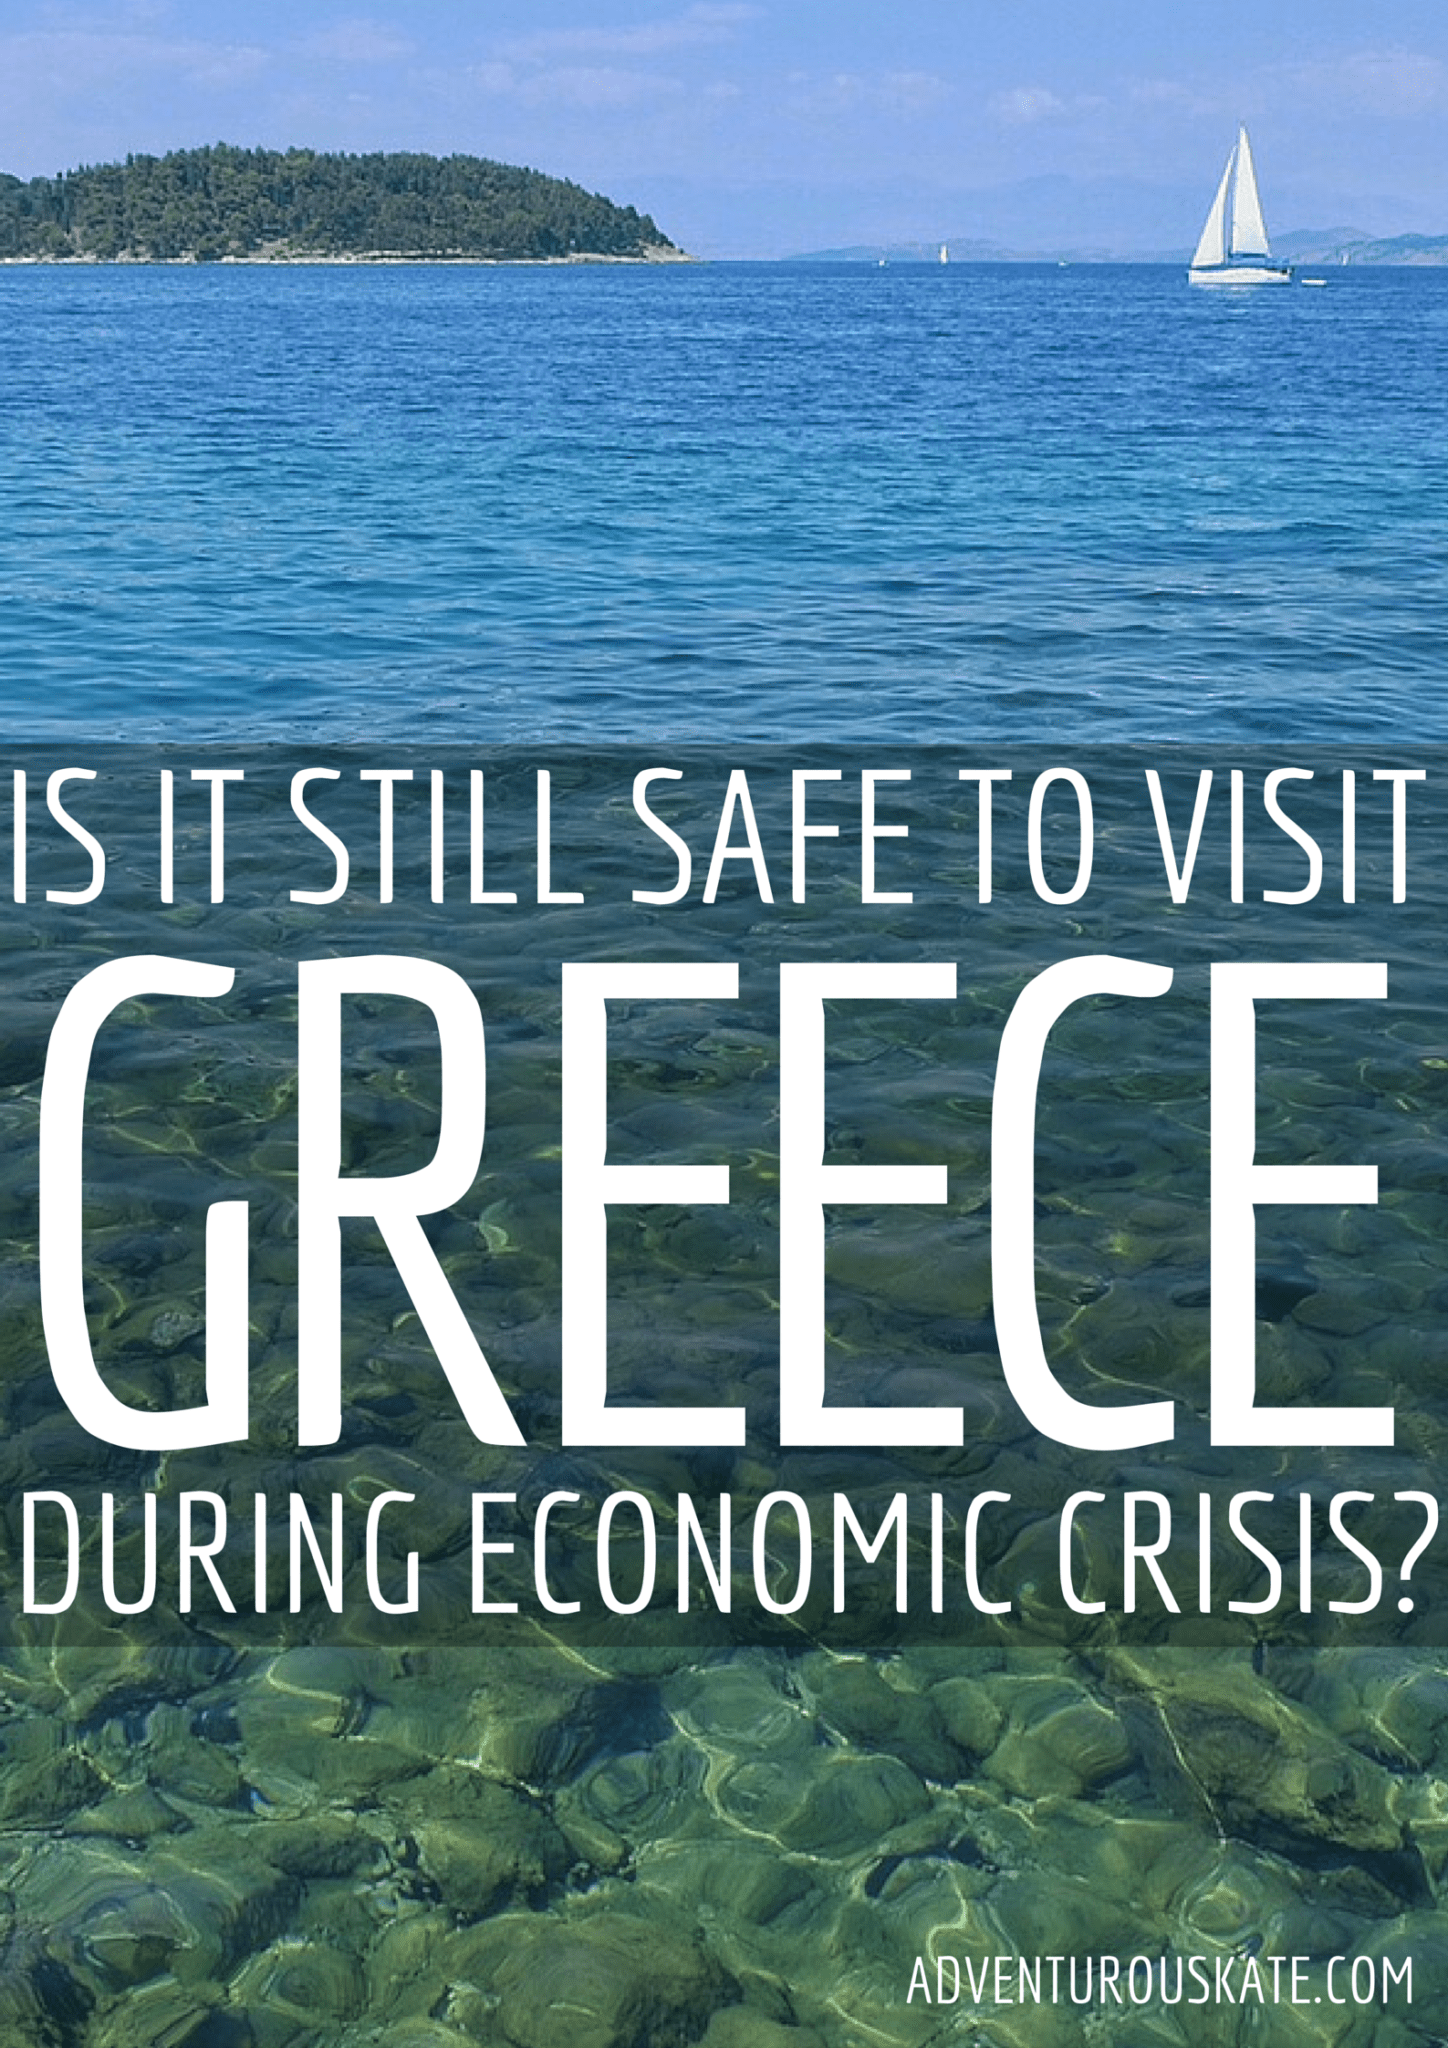 Is it still safe to visit Greece during the financial crisis? Absolutely!